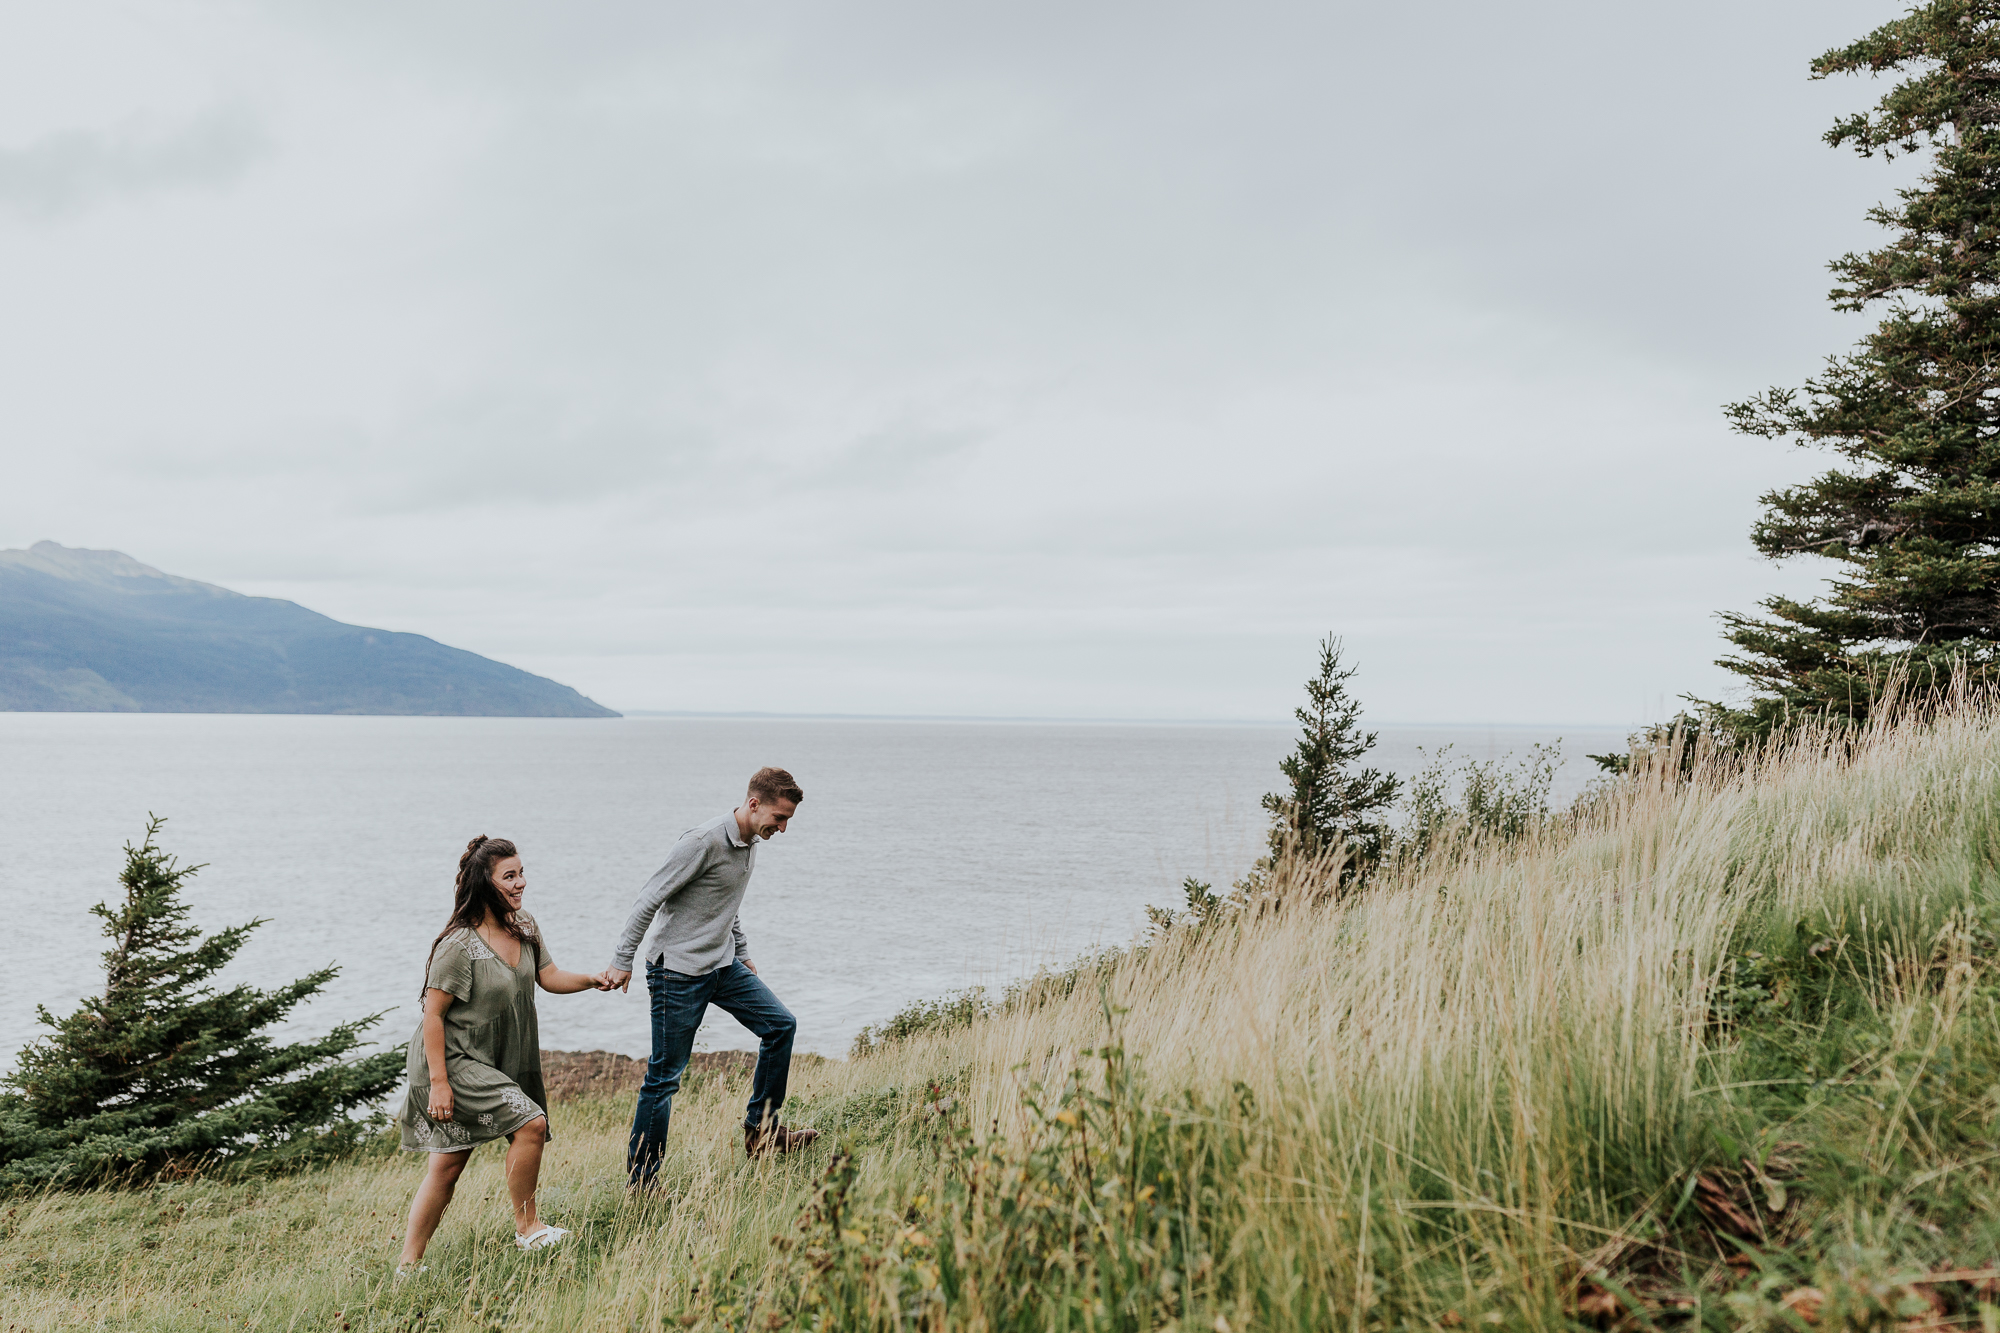 mountain alaska engagement alaska elopement photographer adventurous wedding photographer alaskan photographer midwest elopement photographer